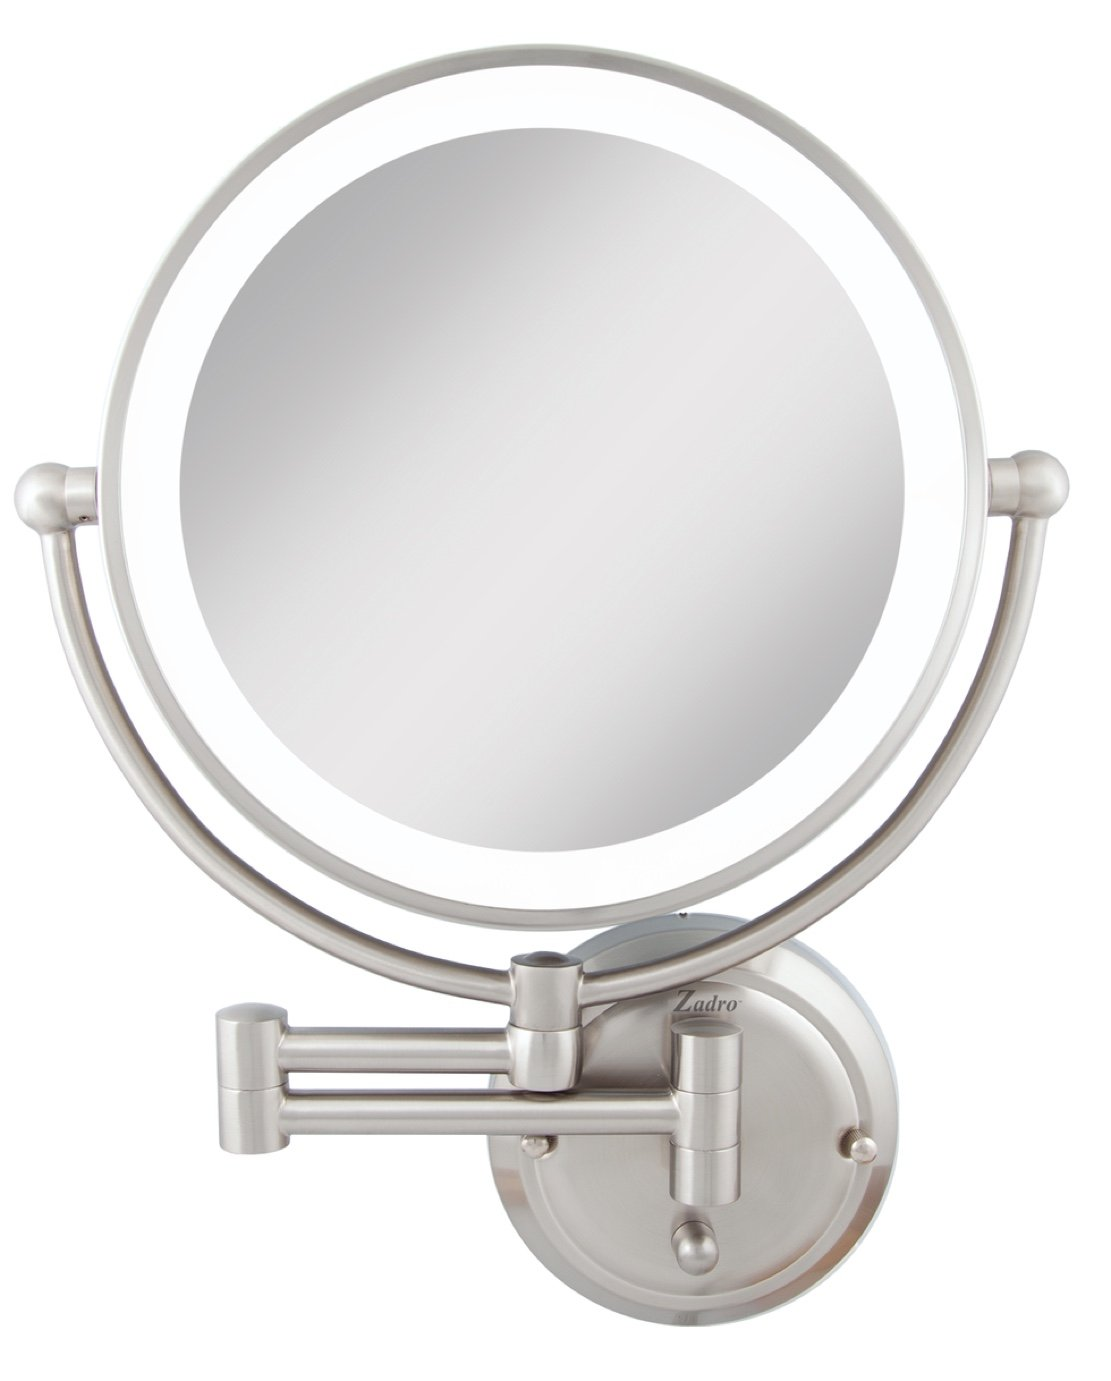 Zadro Light Dimmable Dual-sided Glamour Wall Mount Mirror, Satin Nickel